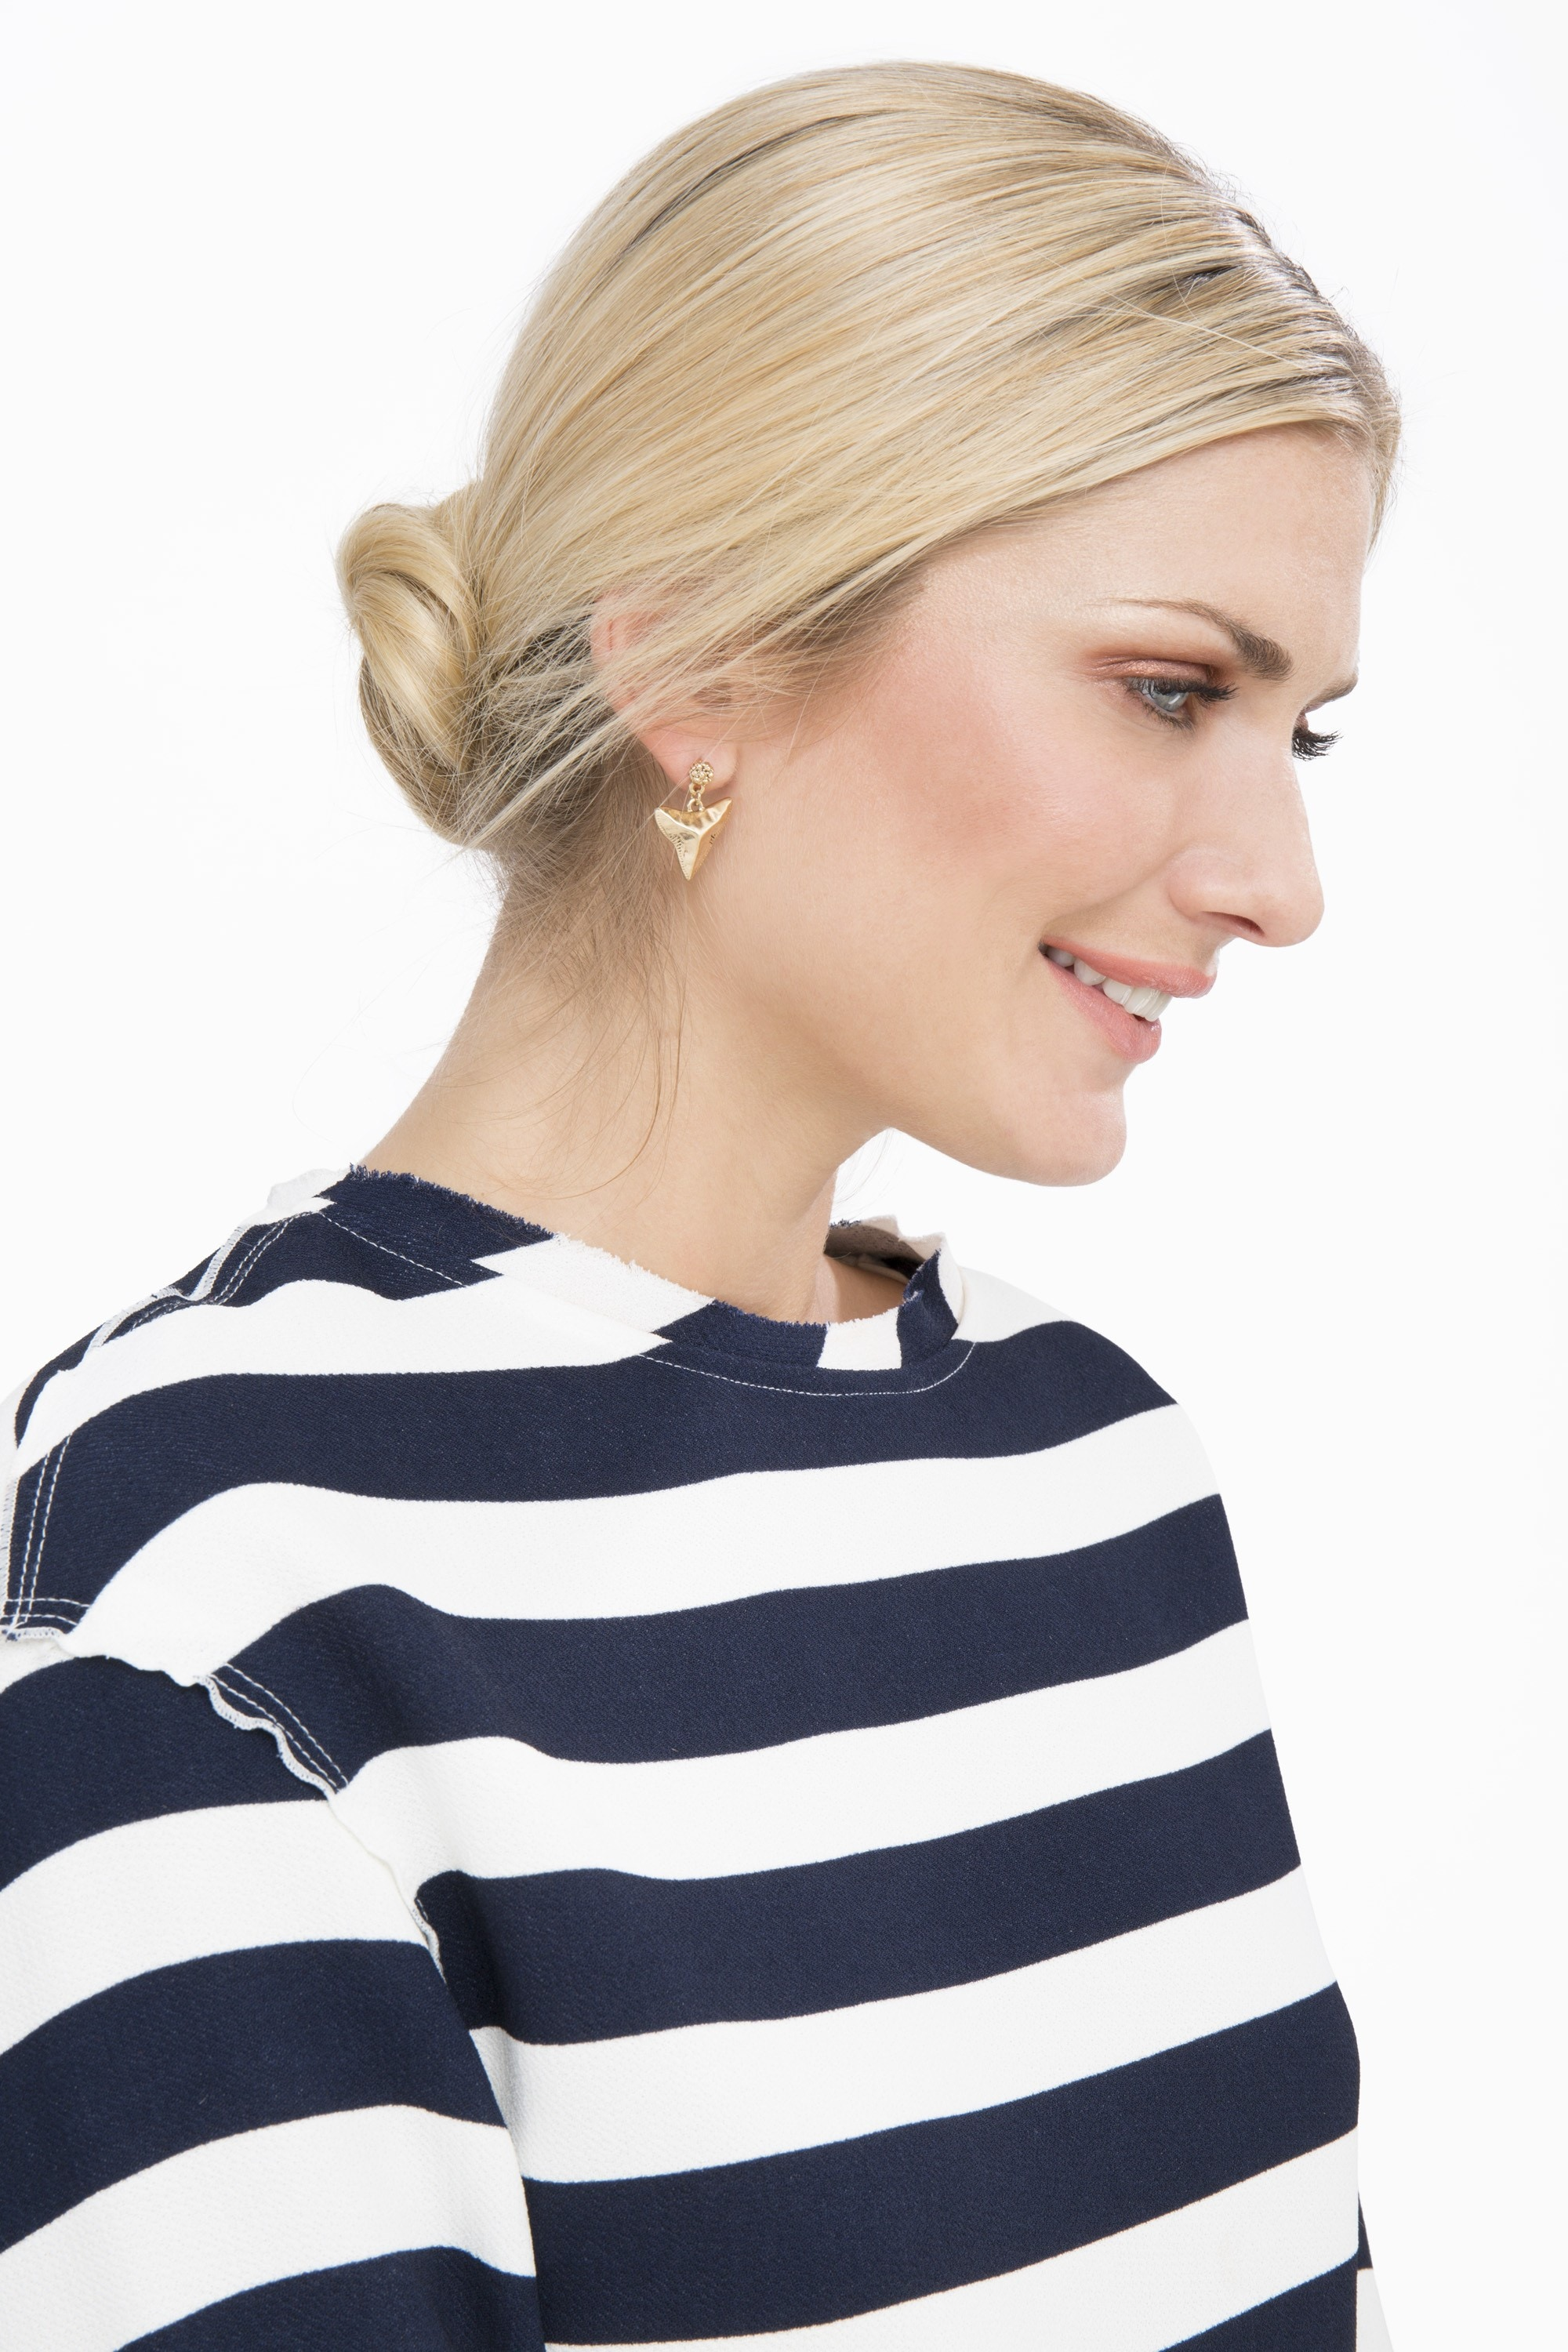 model wearing a striped top and a low bun in her blonde hair